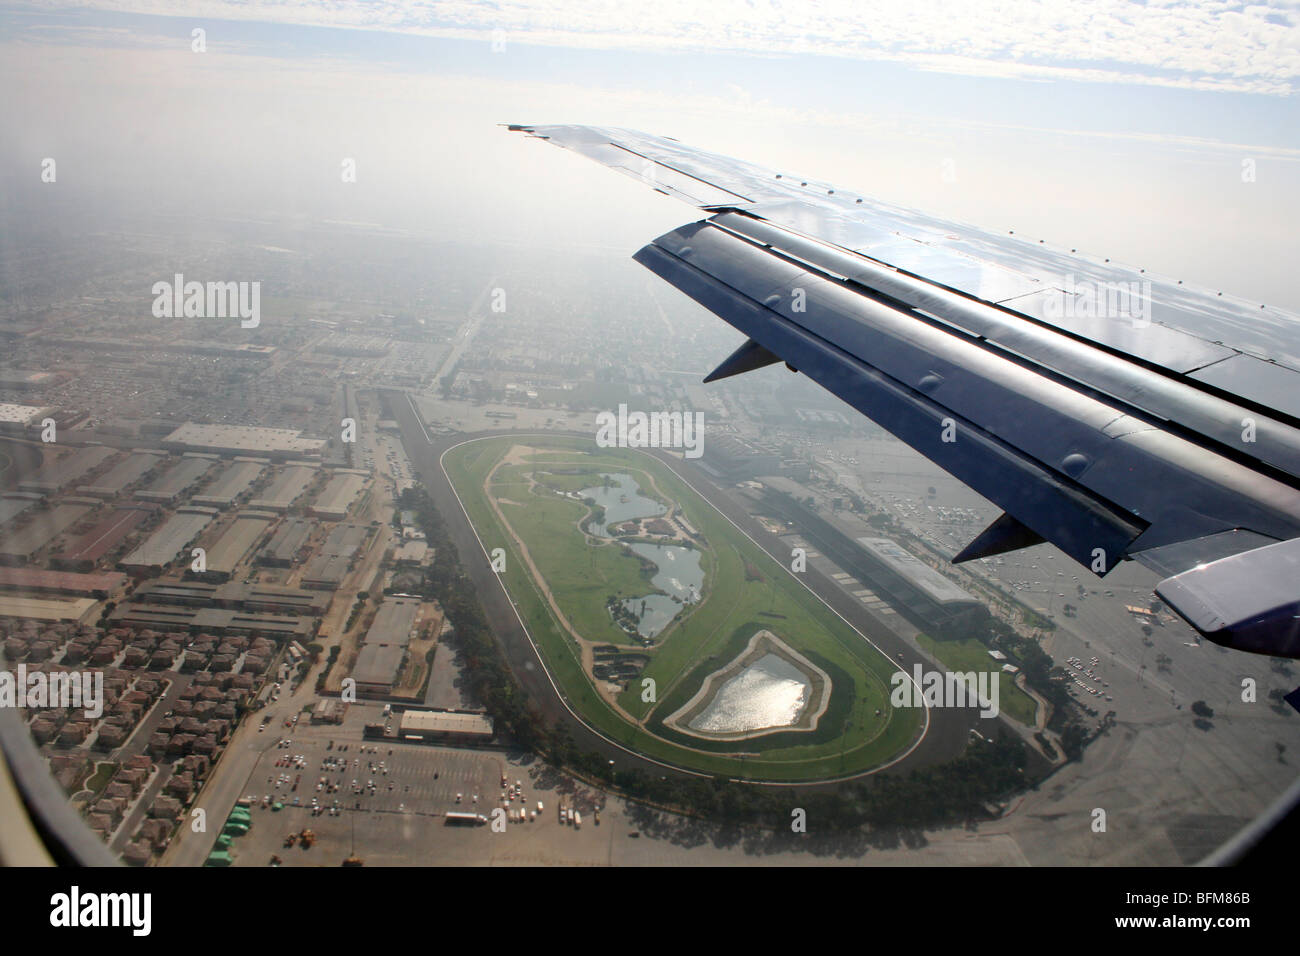 airplane landing in Los Angeles LAX airport areal view land view from above - Stock Image